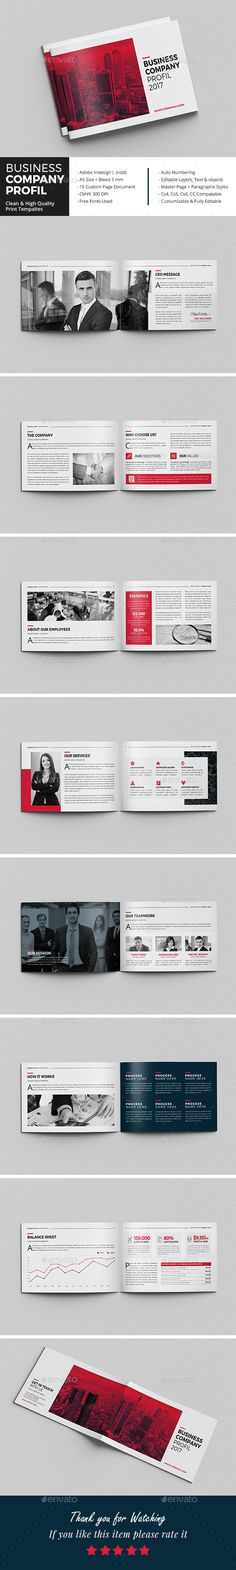 Business Company Profil — InDesign INDD #indesign templates #informational • Download ➝ https://graphicriver.net/item/business-company-profil/19883406?ref=pxcr